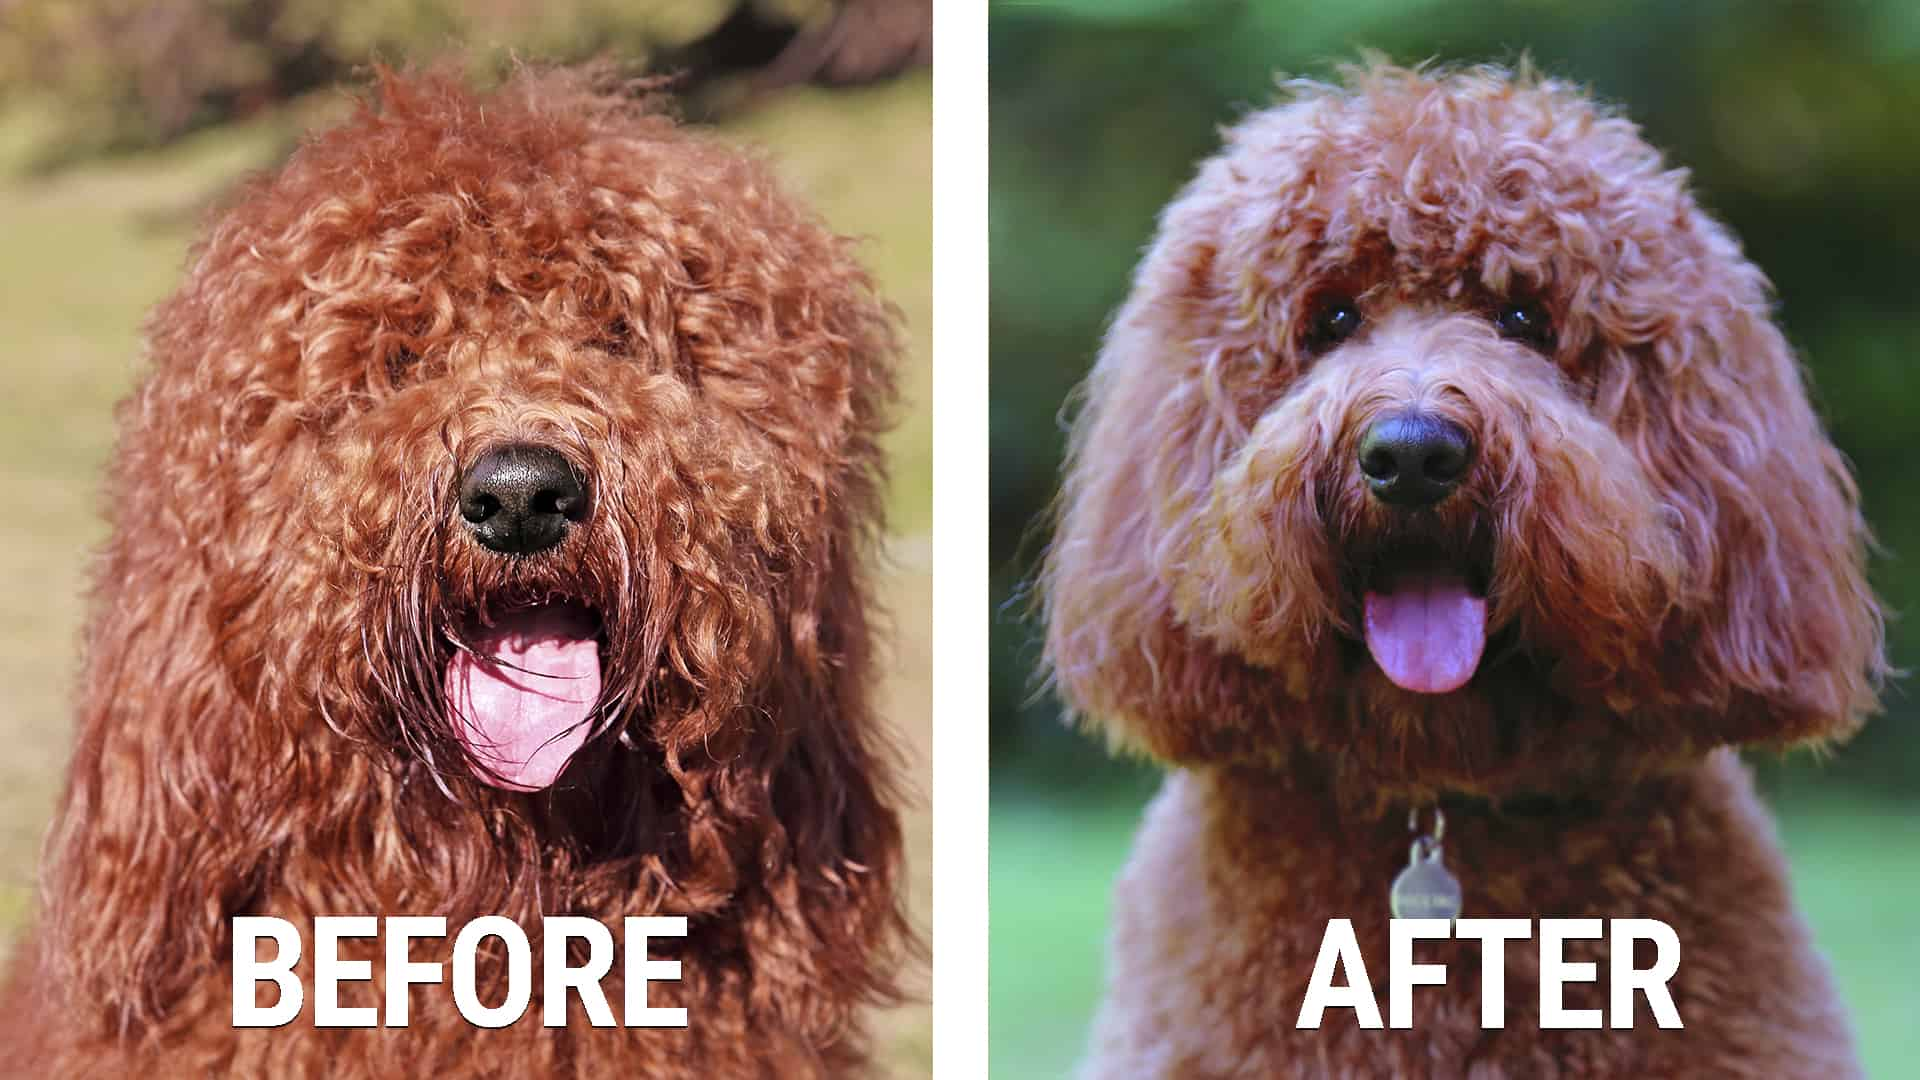 before and after dog grooming session Australian Cobberdog Labradoodle